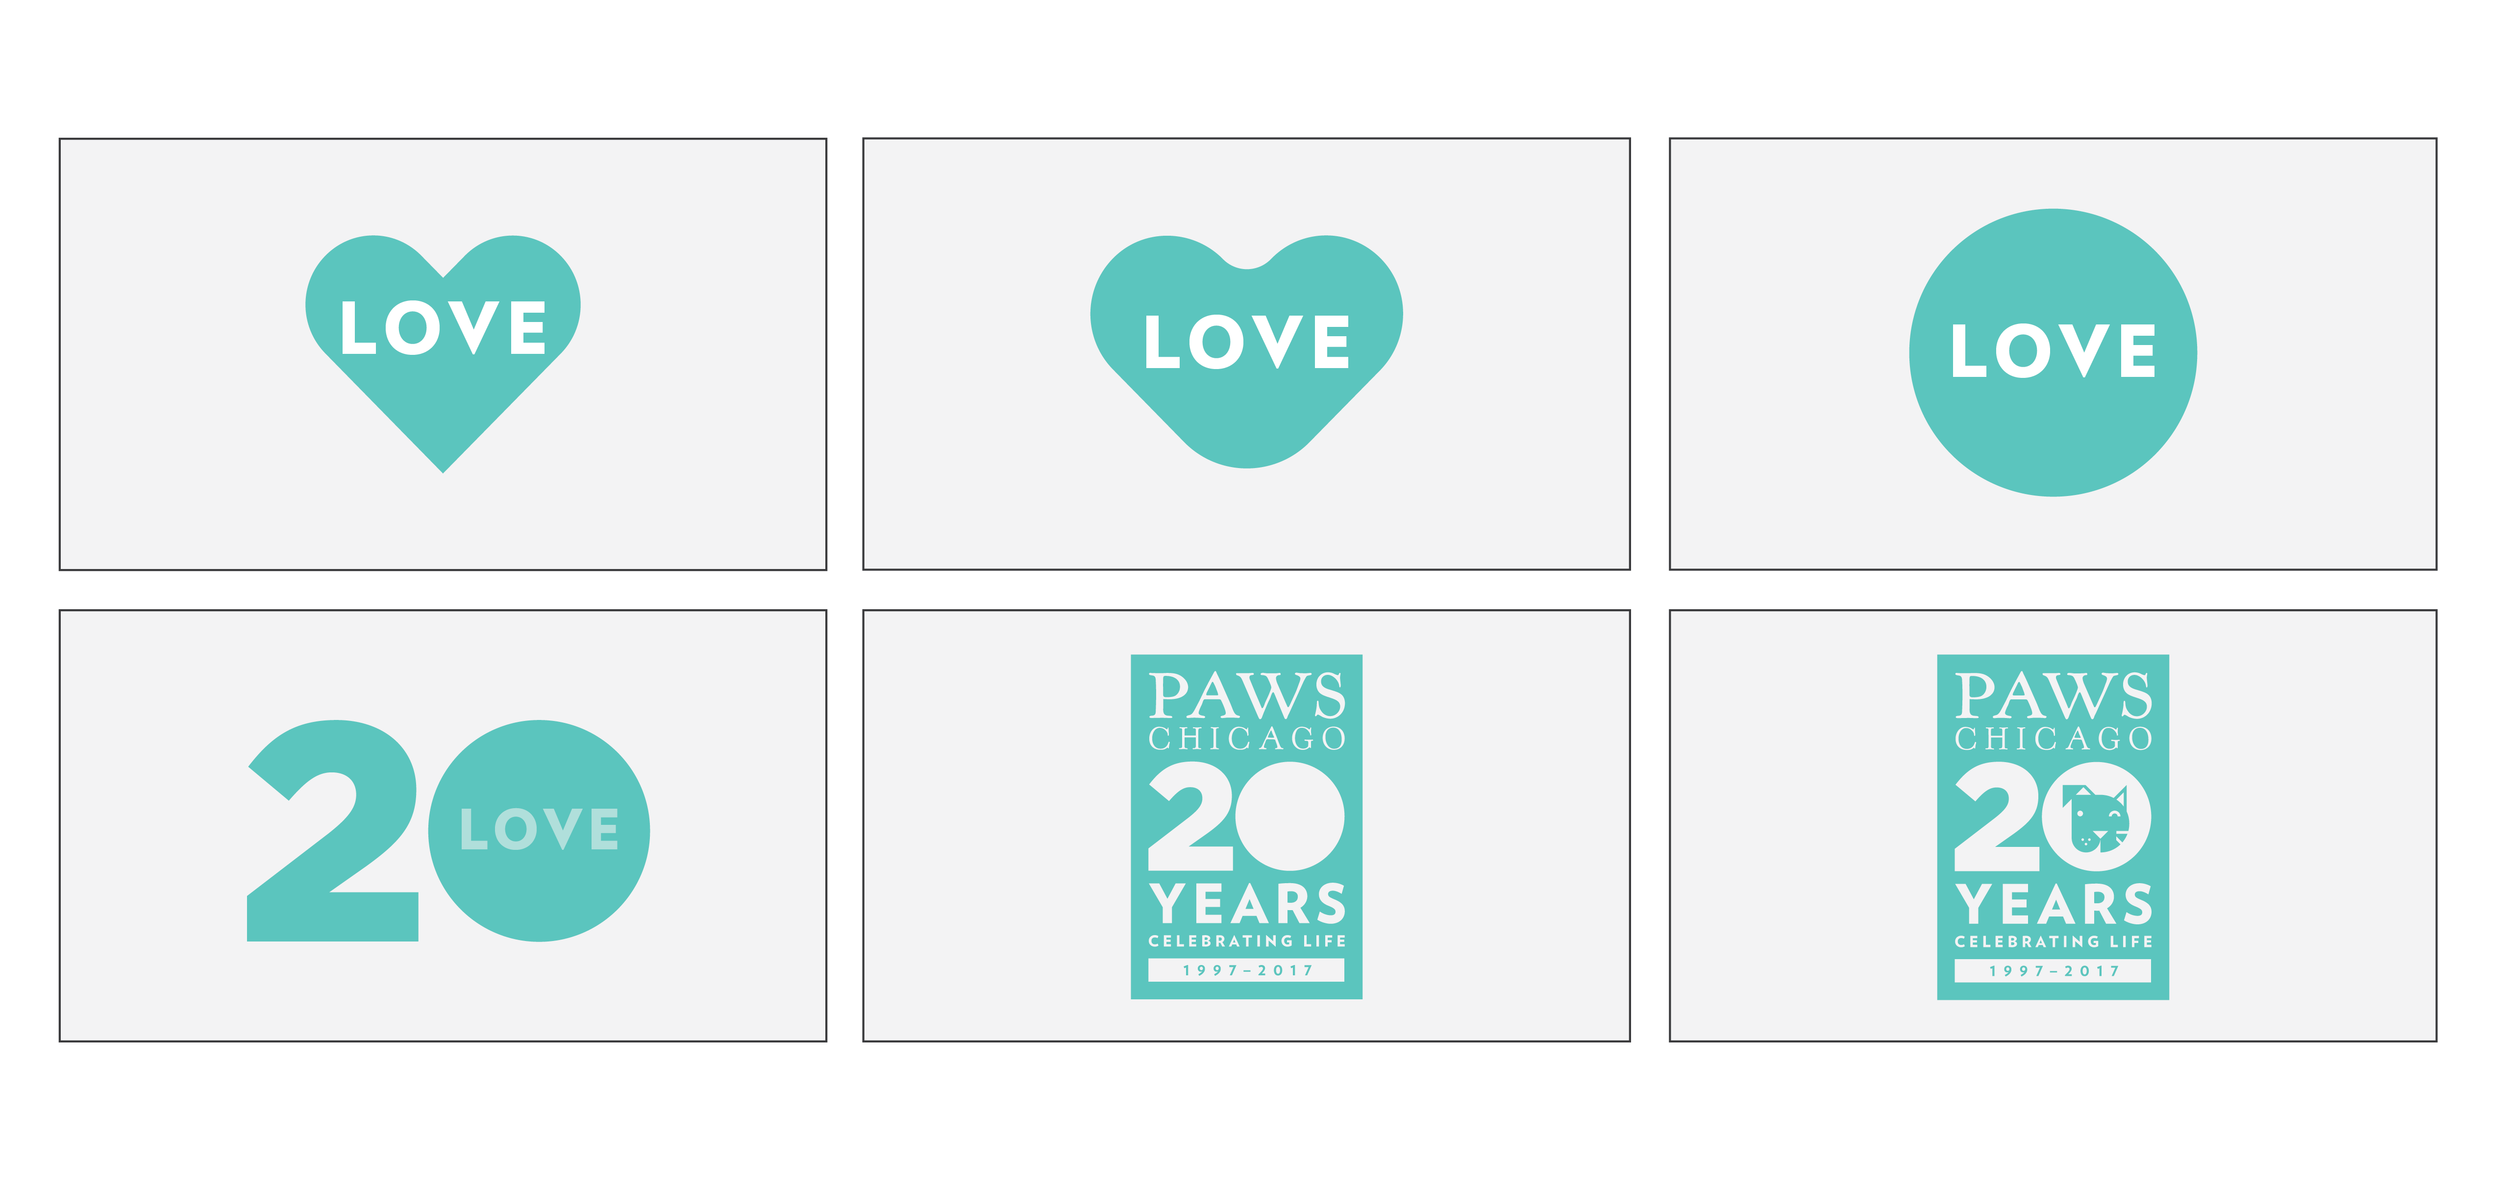 PAWS_LoveAnimation_092317.png